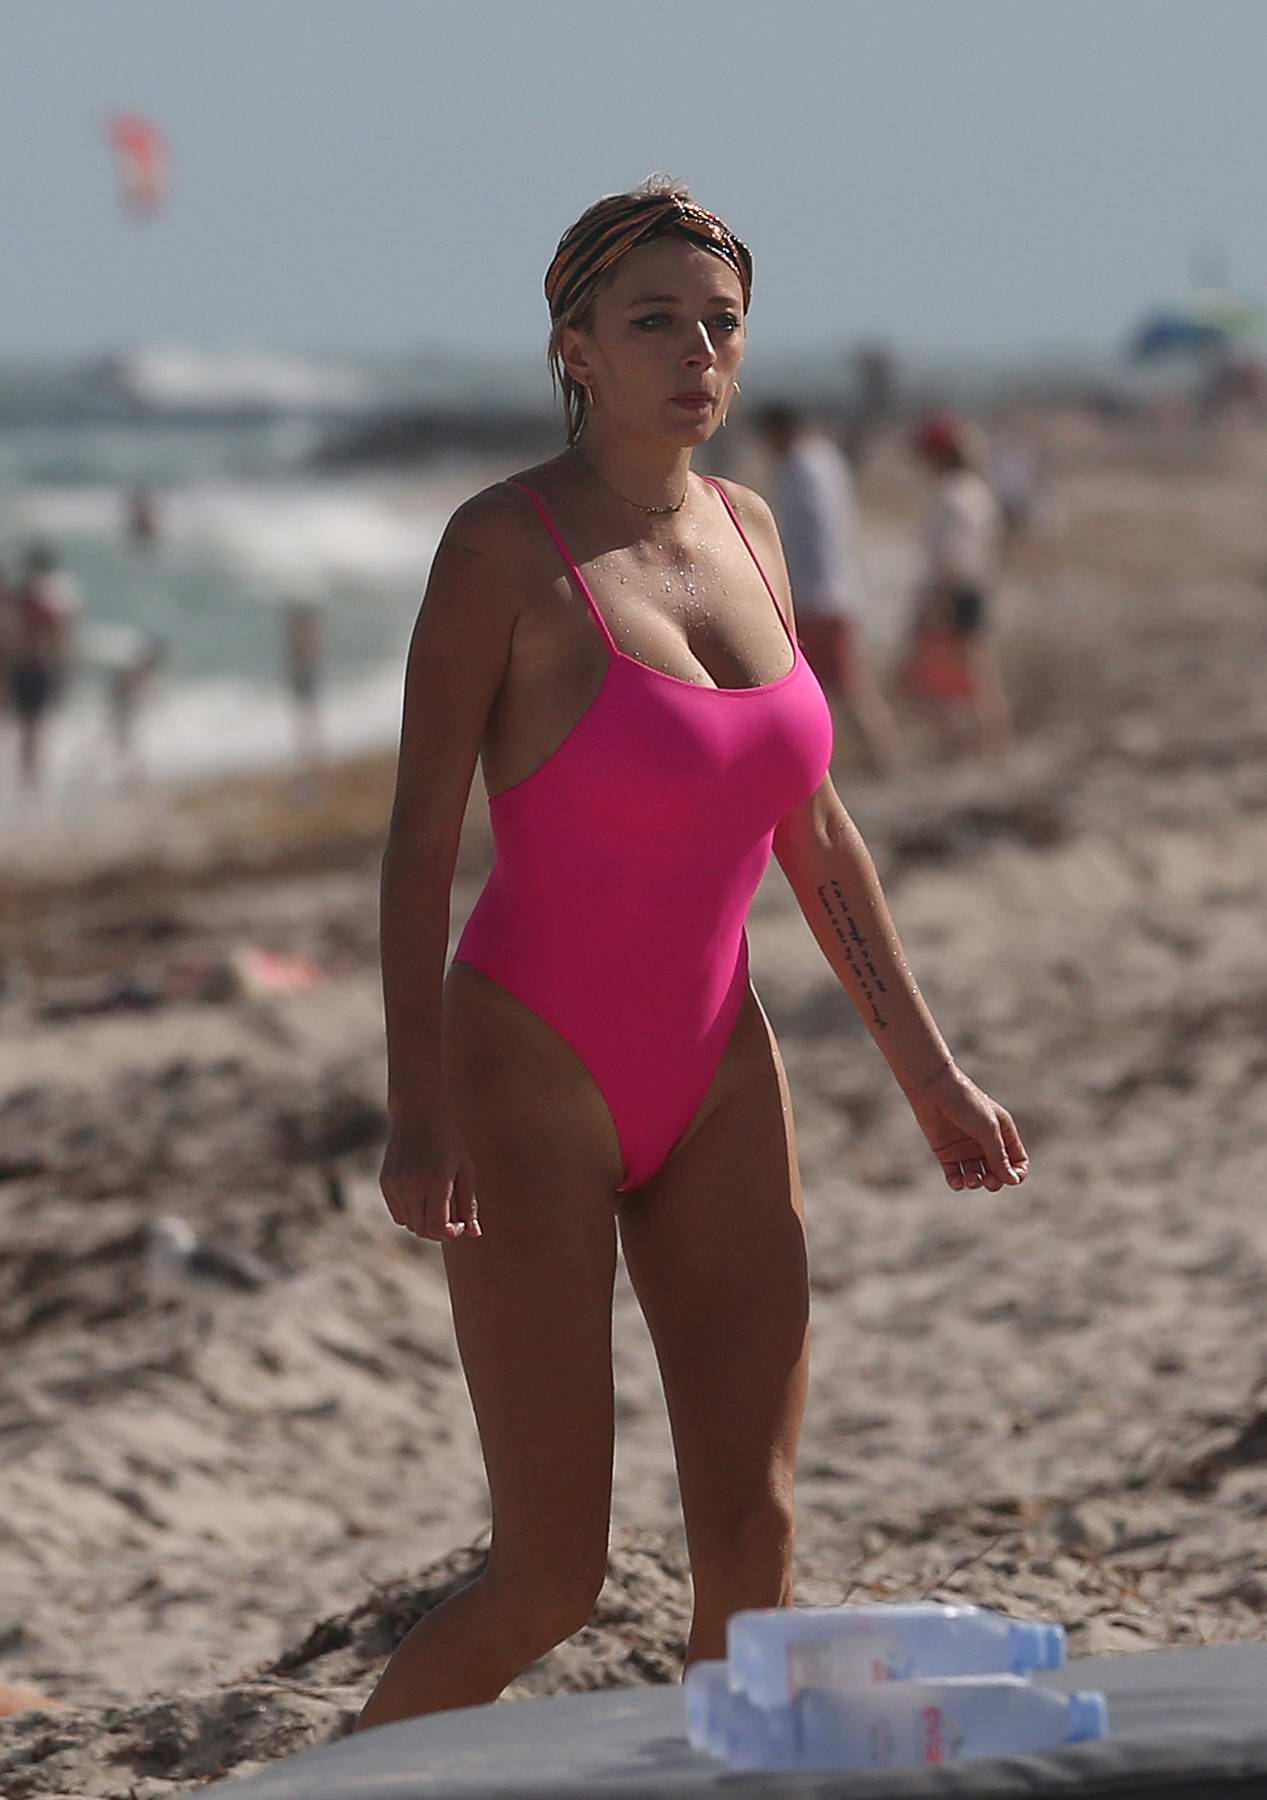 Caroline Vreeland in a pink swimsuit enjoying the ocean at Miami Beach, Florida